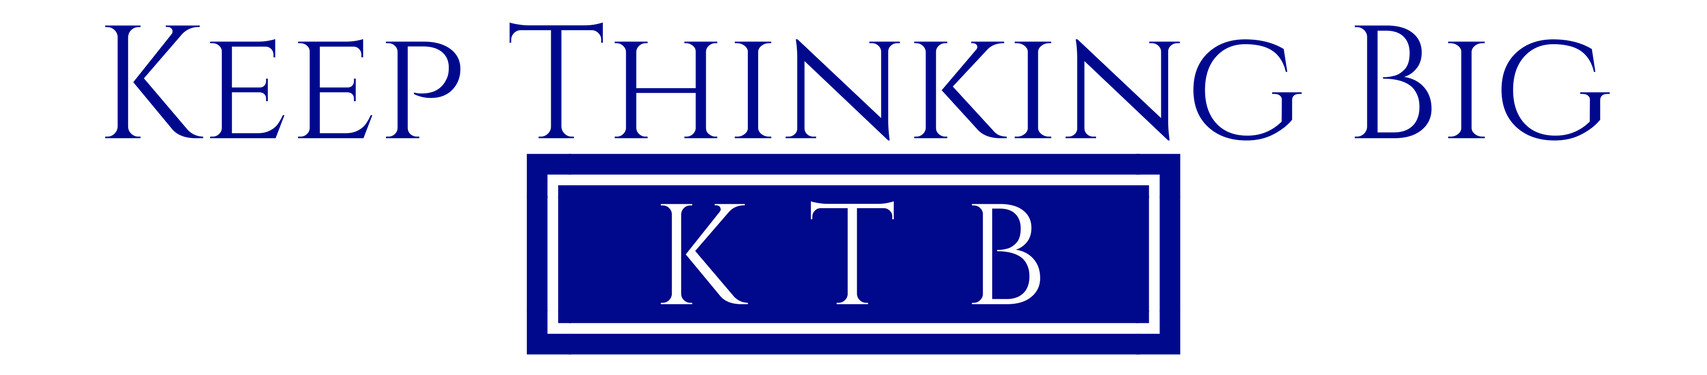 Keep Thinking Big Logo